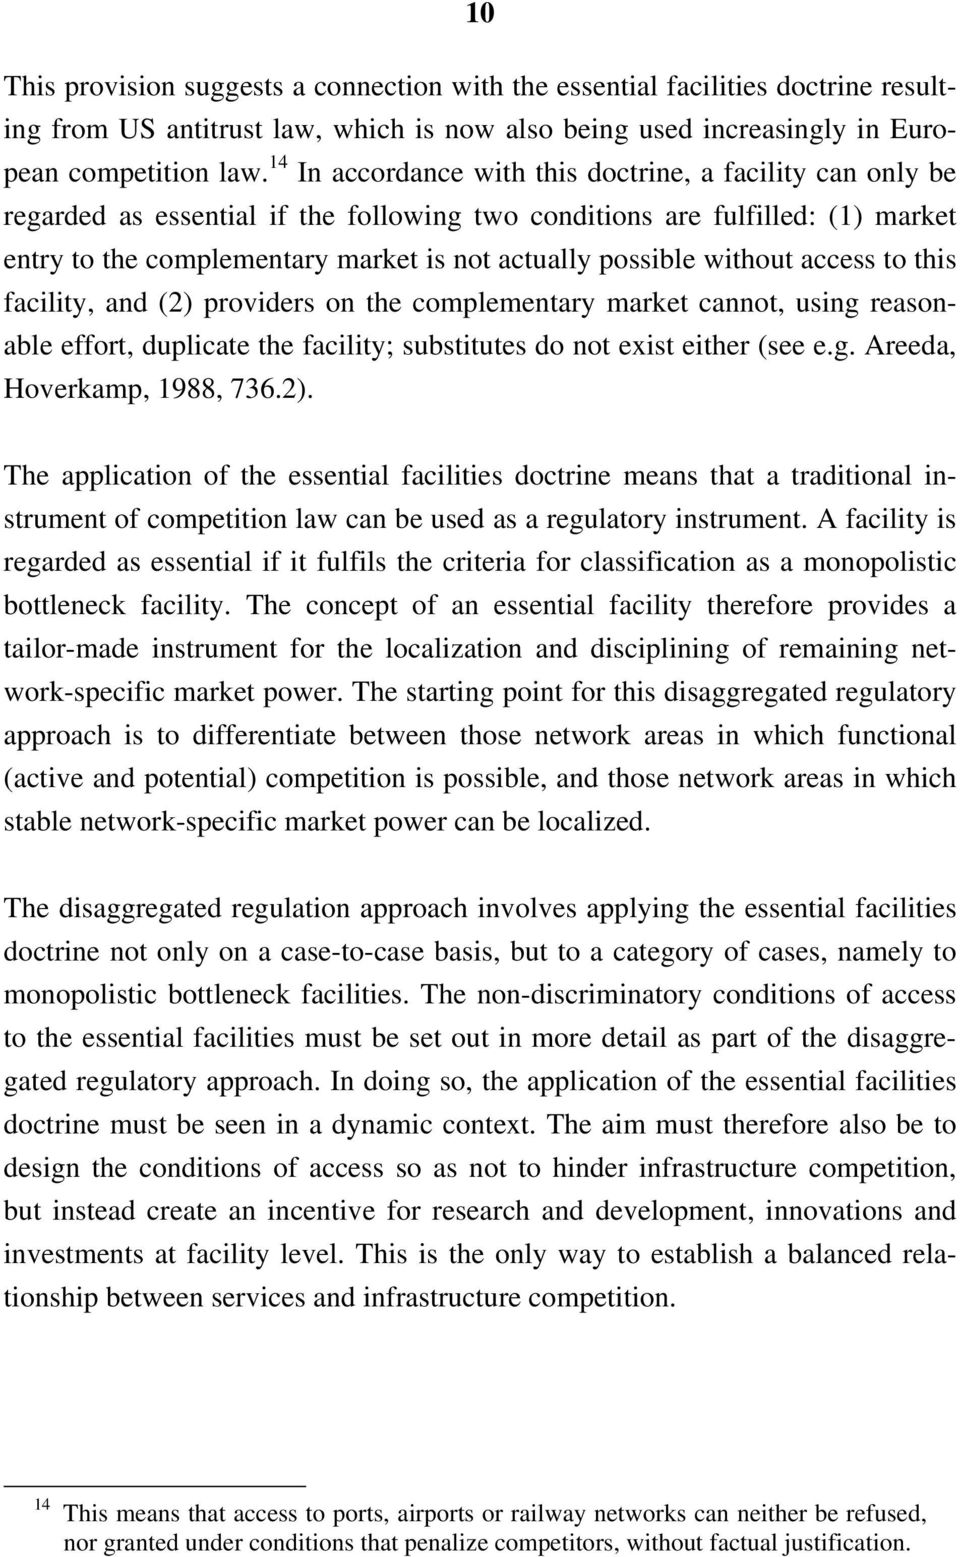 without access to this facility, and (2) providers on the complementary market cannot, using reasonable effort, duplicate the facility; substitutes do not exist either (see e.g. Areeda, Hoverkamp, 1988, 736.